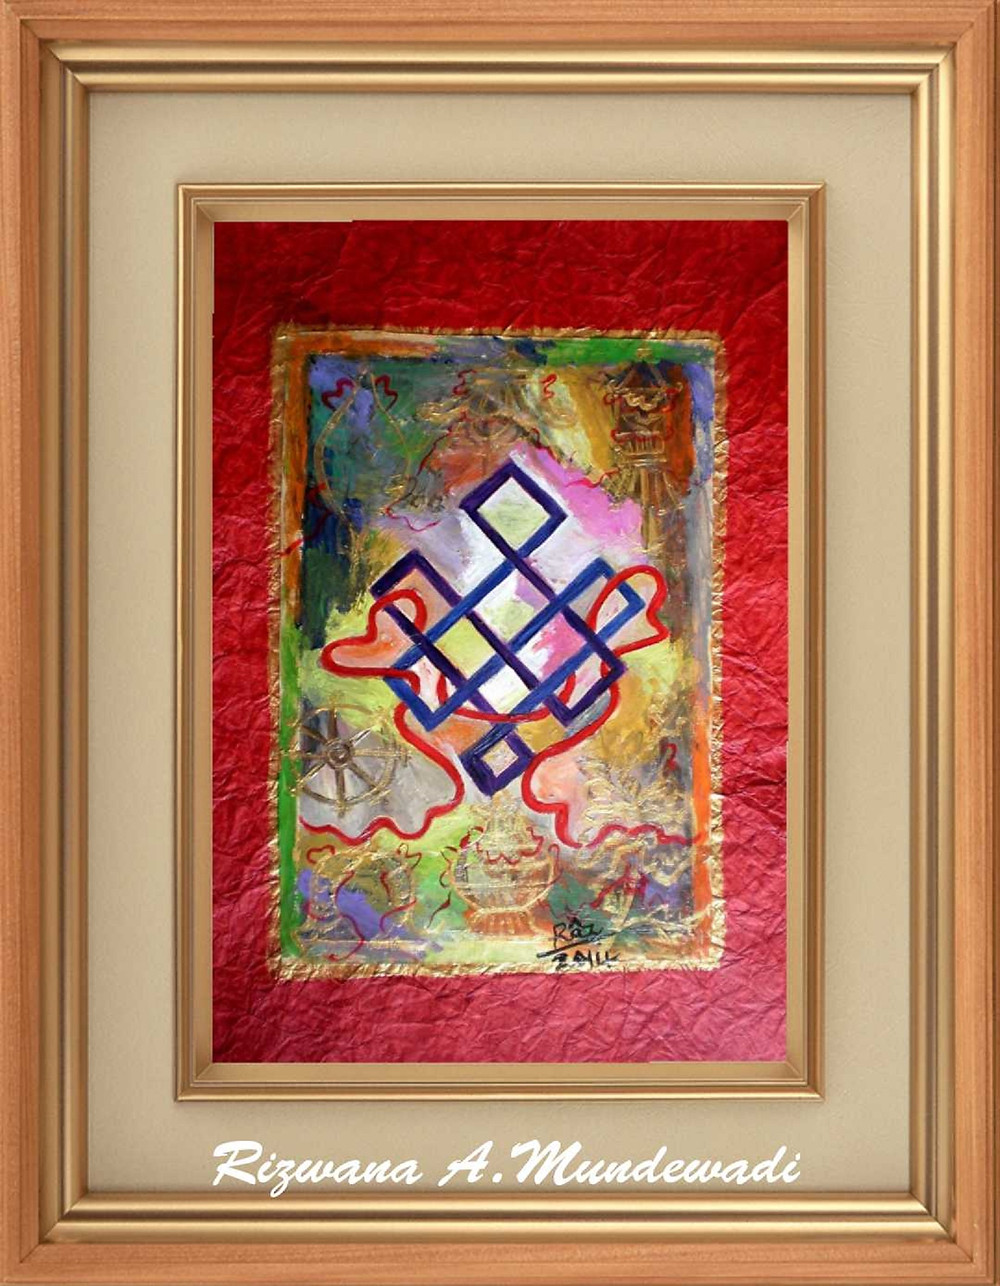 mystic knot symbol painting for sale